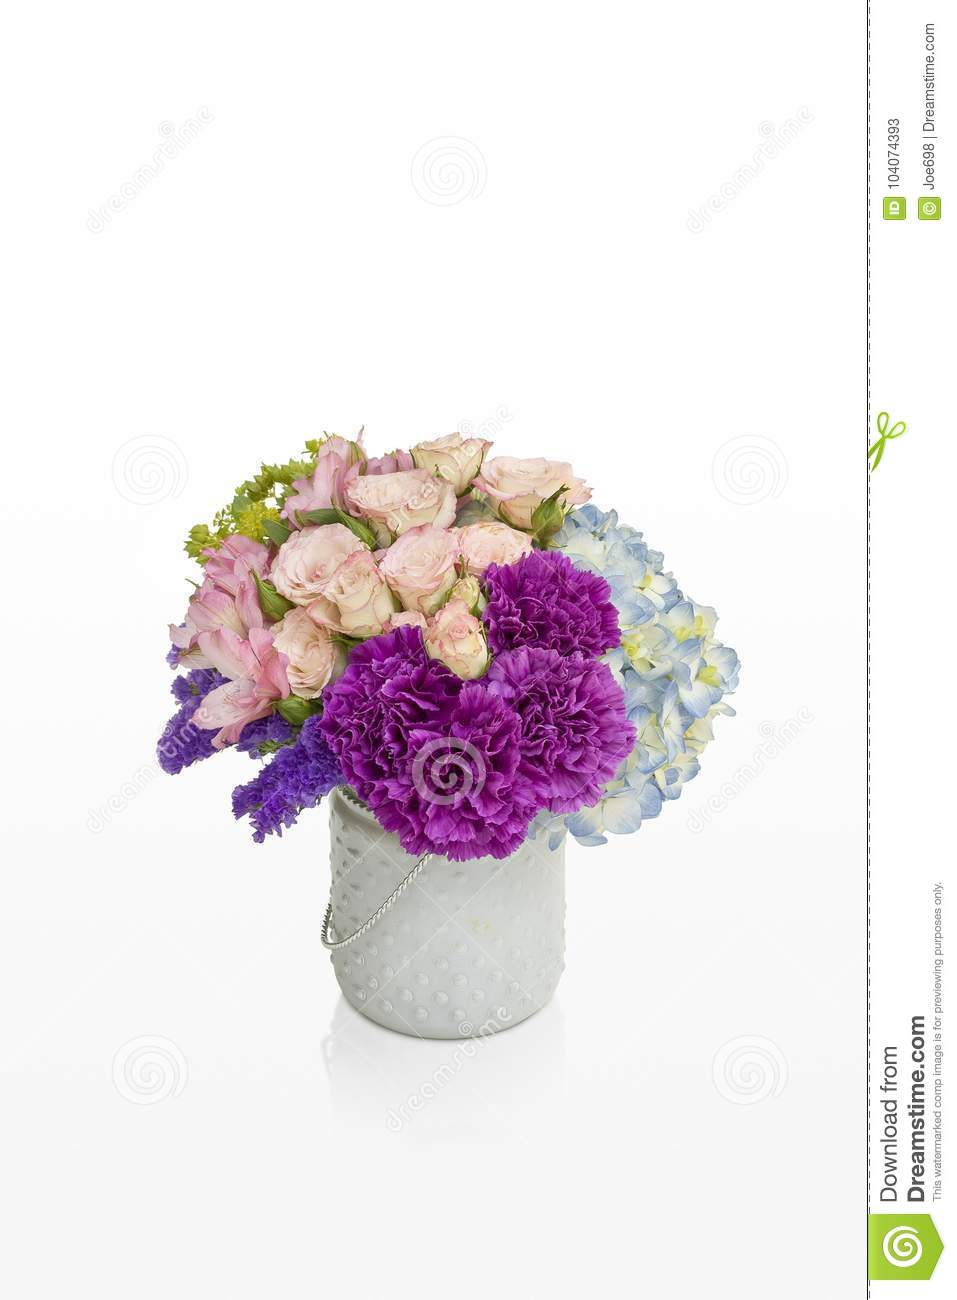 Pink and purple flower arrangement roses and hydrangea in a white pink and purple flower arrangement roses and hydrangea in a white vase designed for florist mightylinksfo